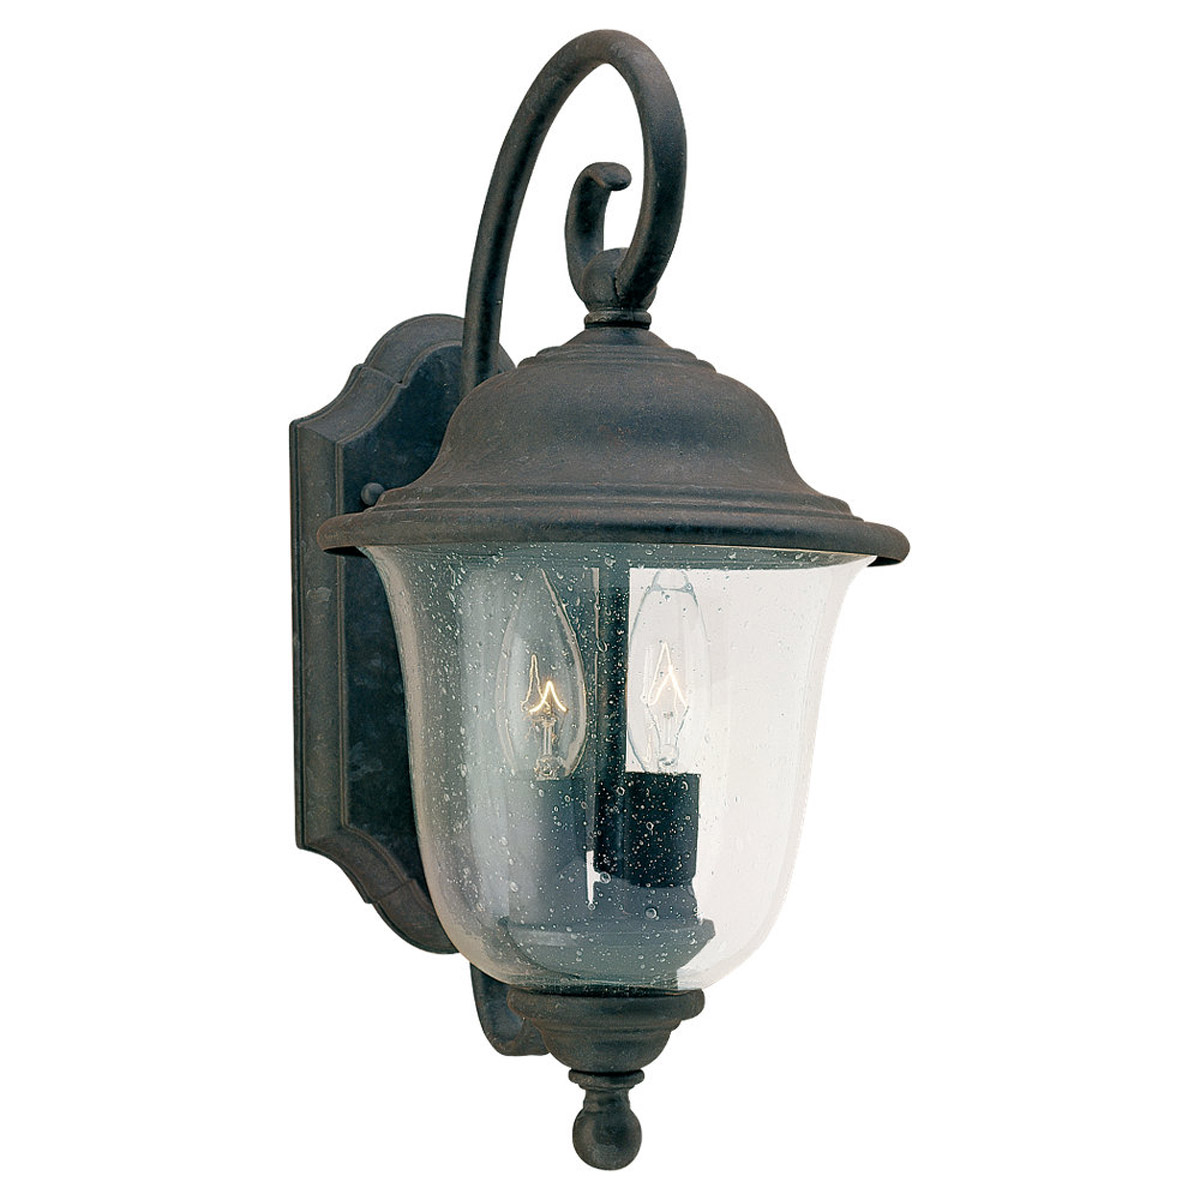 Sea Gull Lighting Trafalgar 2 Light Outdoor Wall Lantern in Oxidized Bronze 8459-46 photo